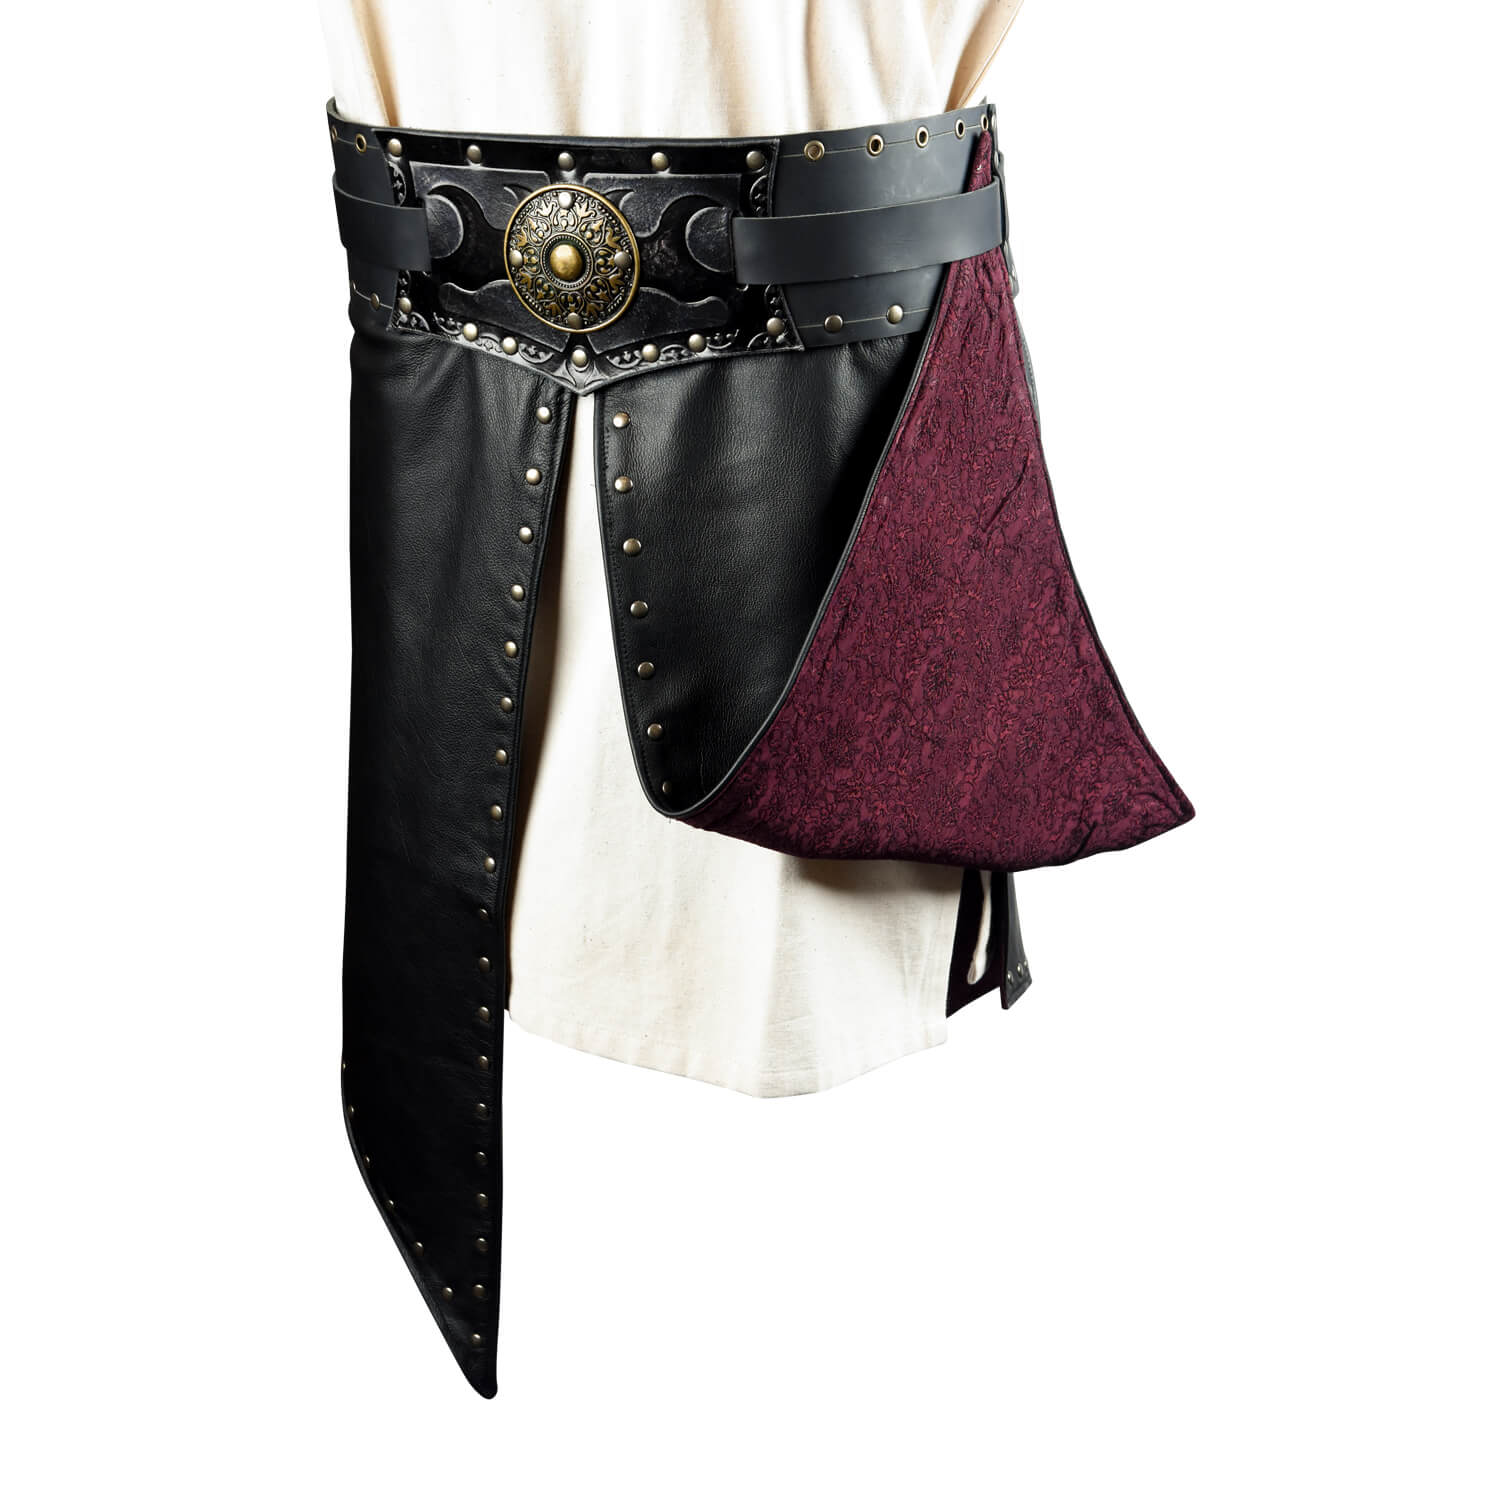 Assassin Large Belt with Skirt